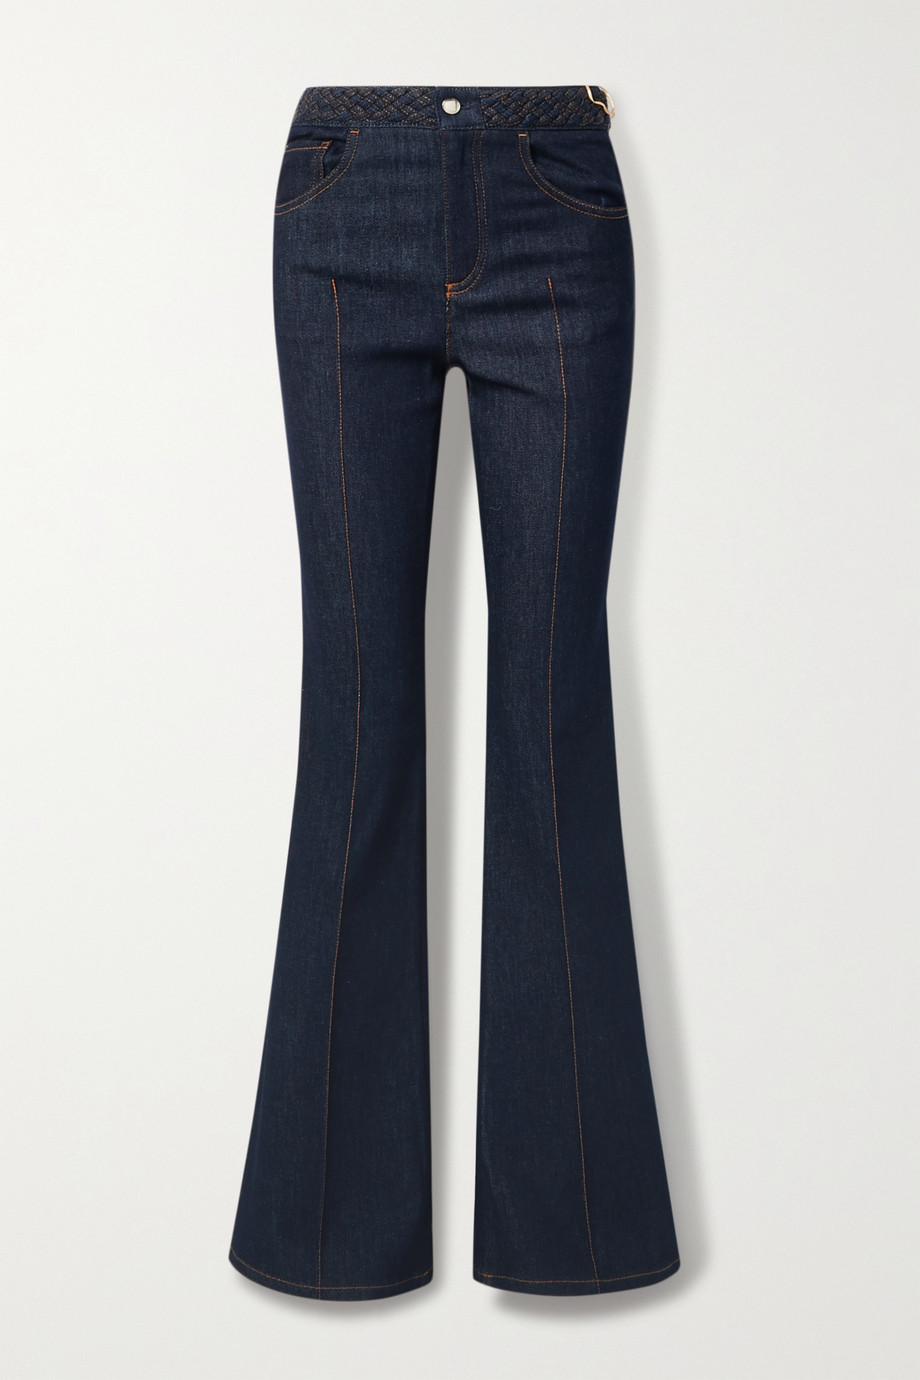 Chloé Braided high-rise bootcut jeans